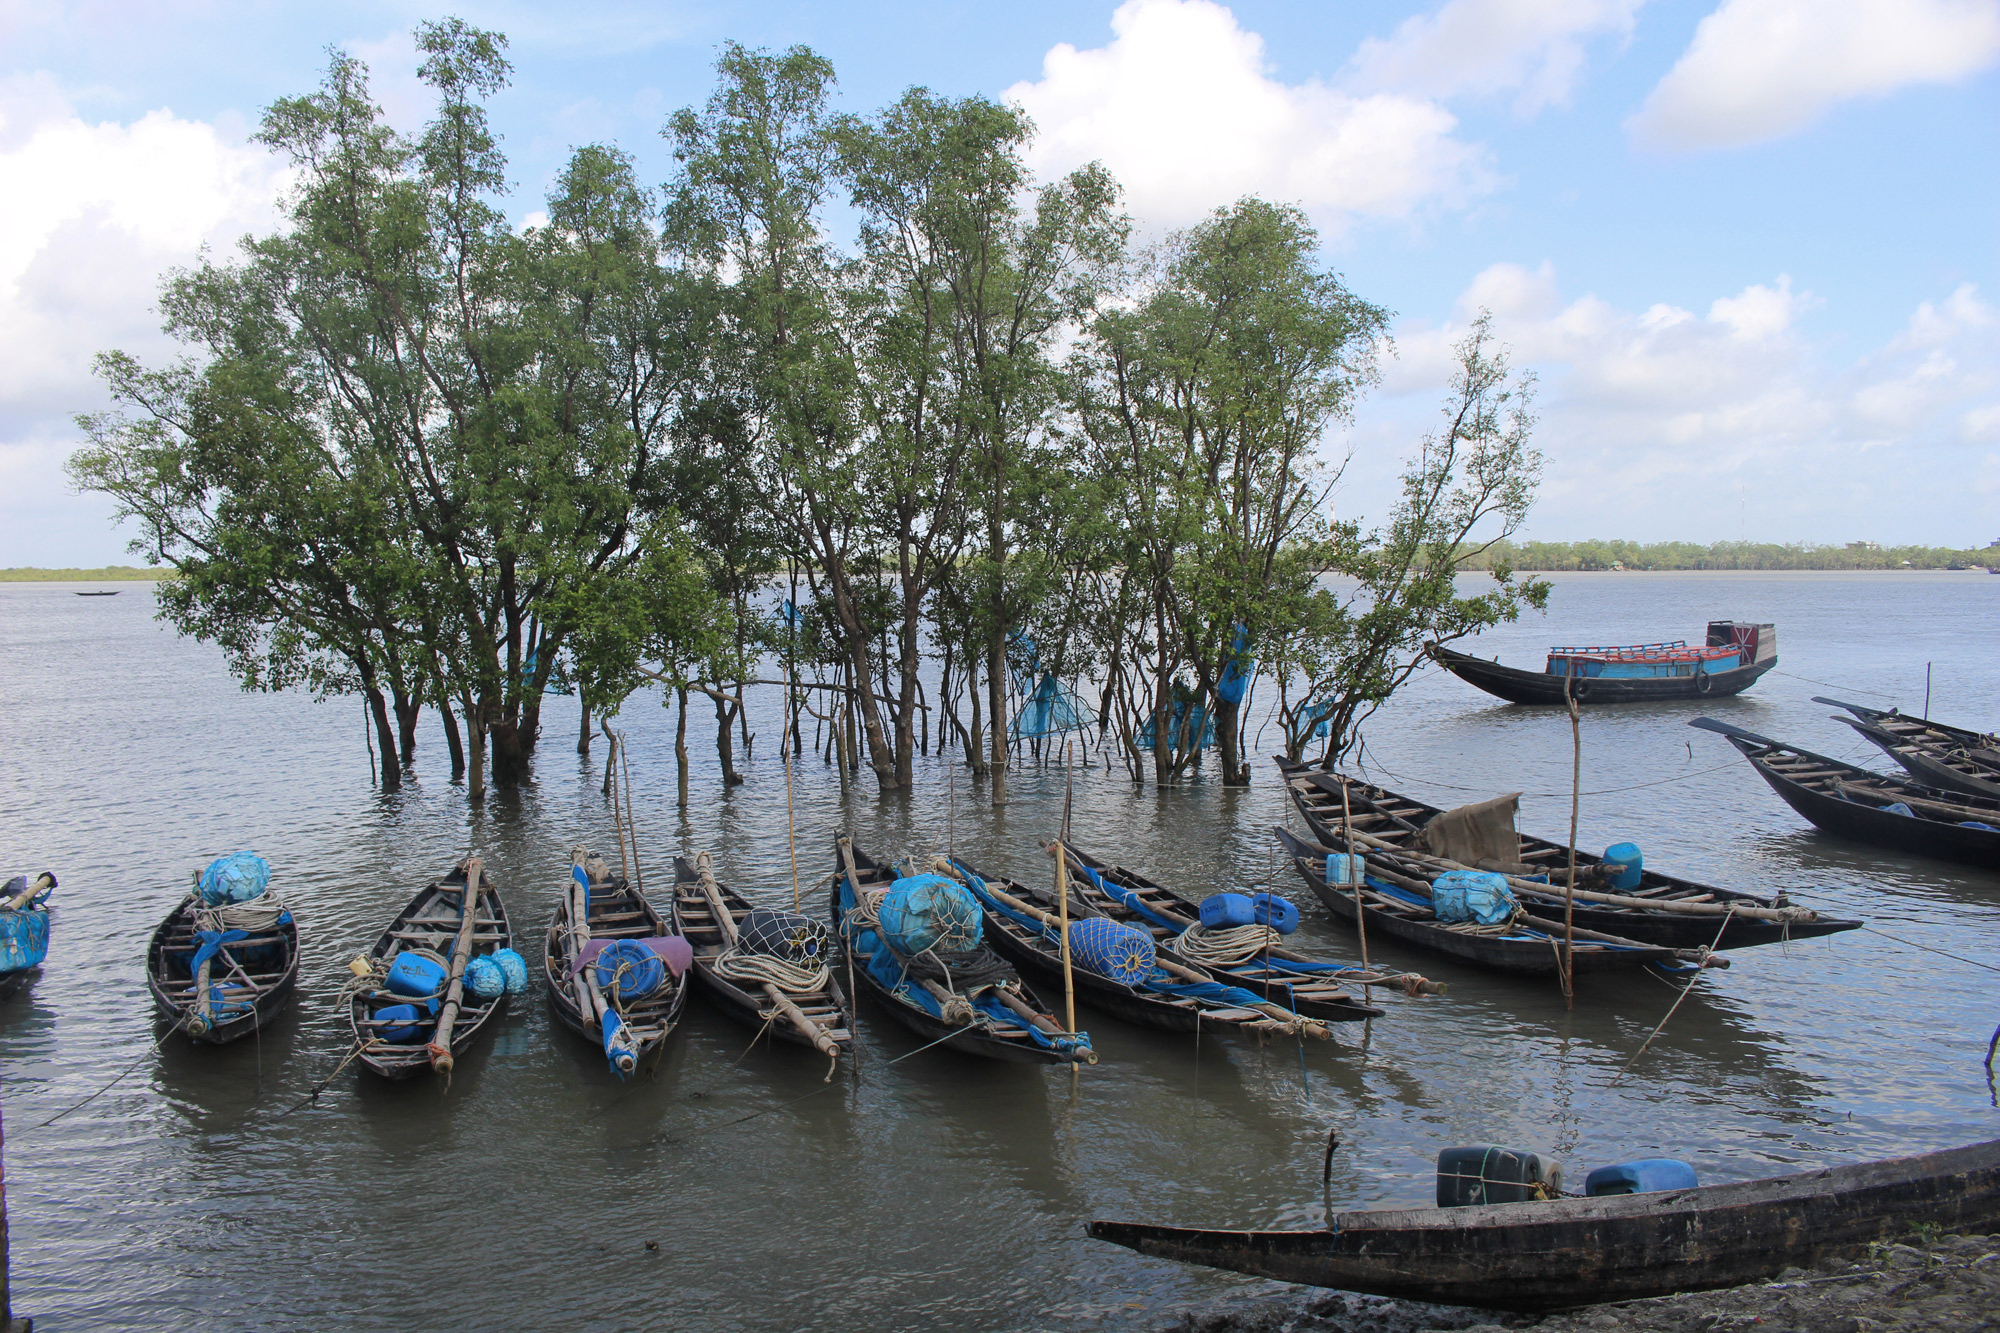 Boats line the shore in Bangladesh, where increasing water salinity leads to a water crisis. (Photo by Neha Thirani Bagri/GroundTruth)